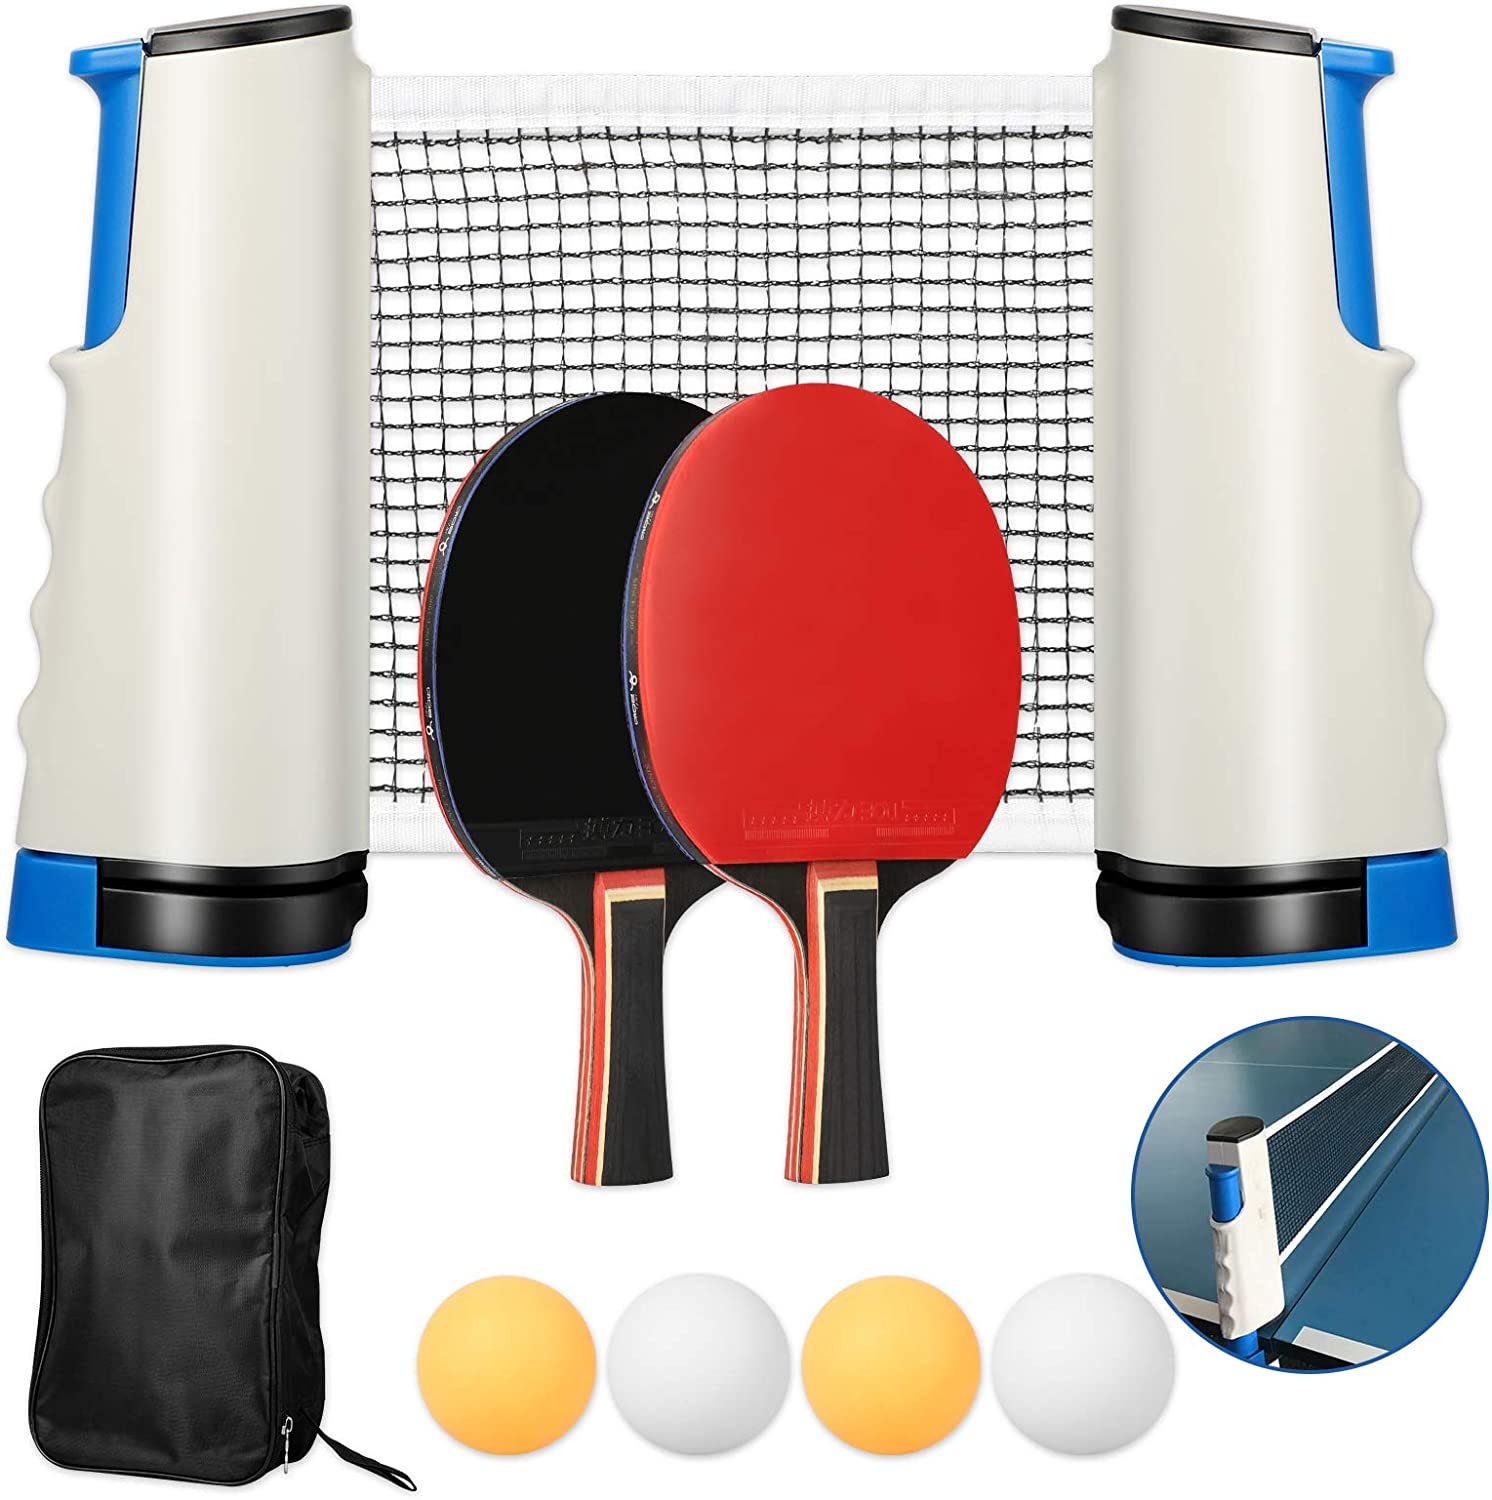 EEEKit Professional Popular overseas Ping Pong Paddle Retractable with Net Set 2 Recommended